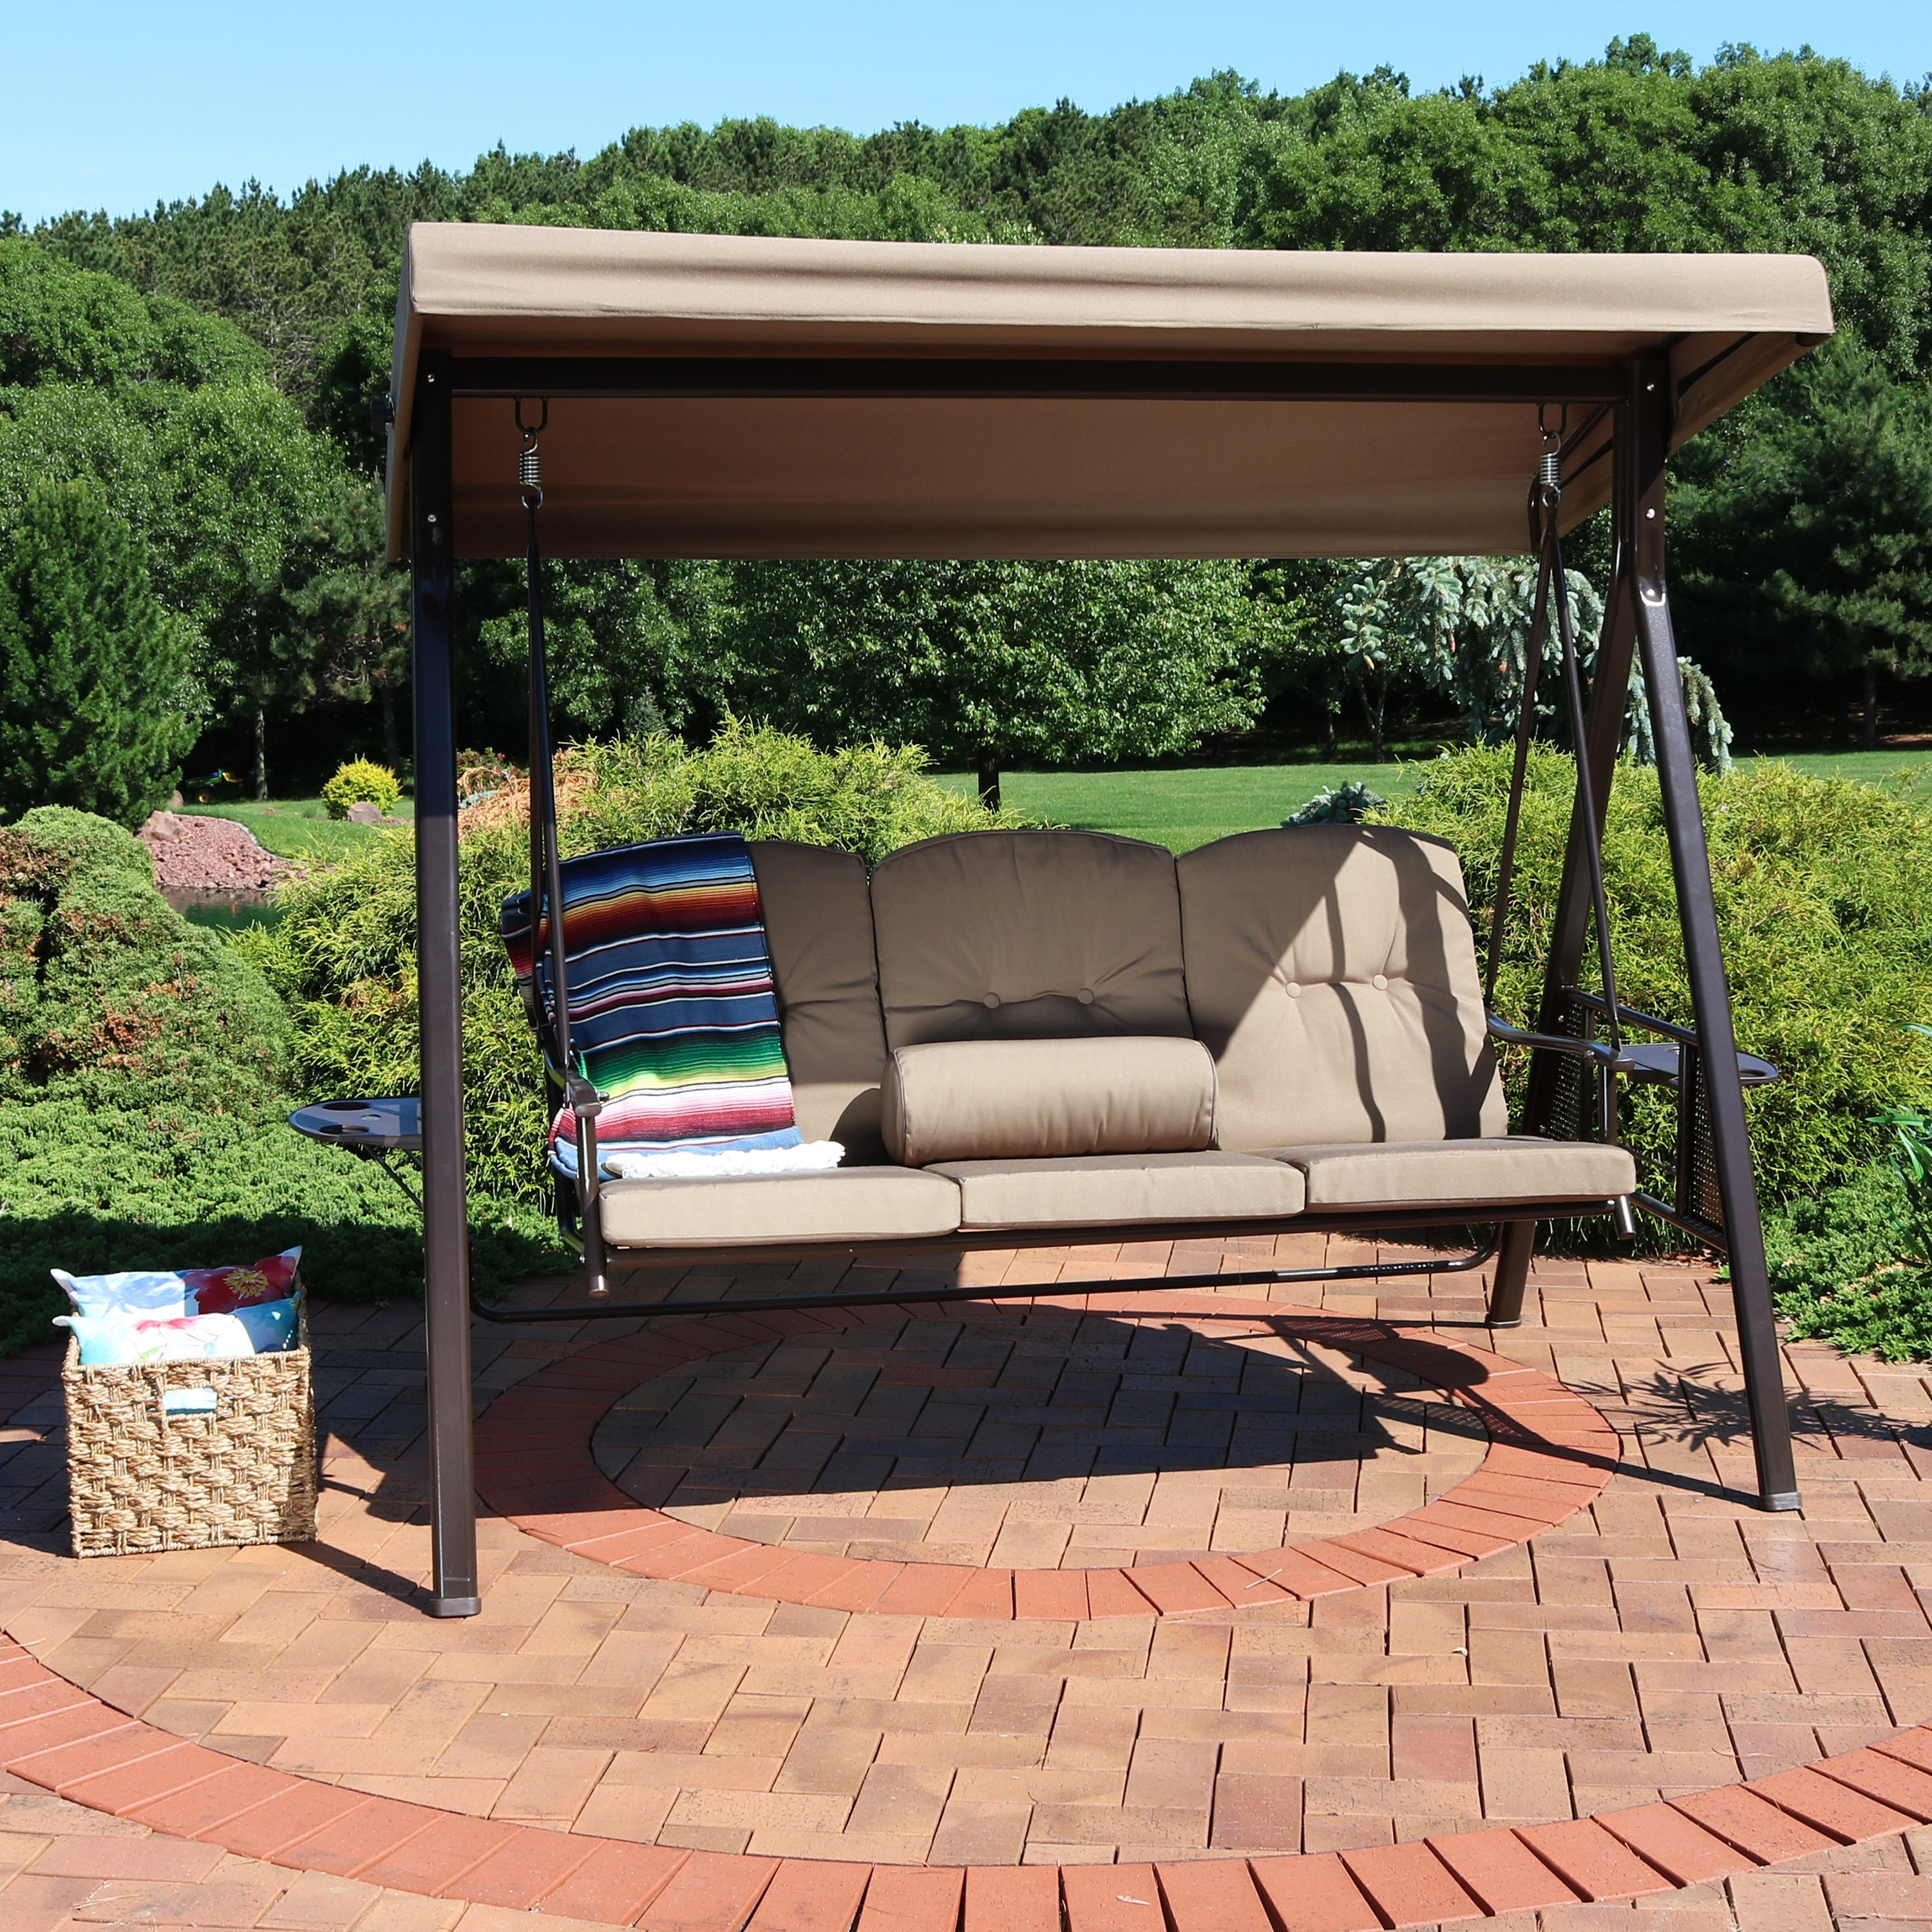 Sunnydaze 3 Person Adjule Tilt Canopy Patio Swing With Pillows And Cushions